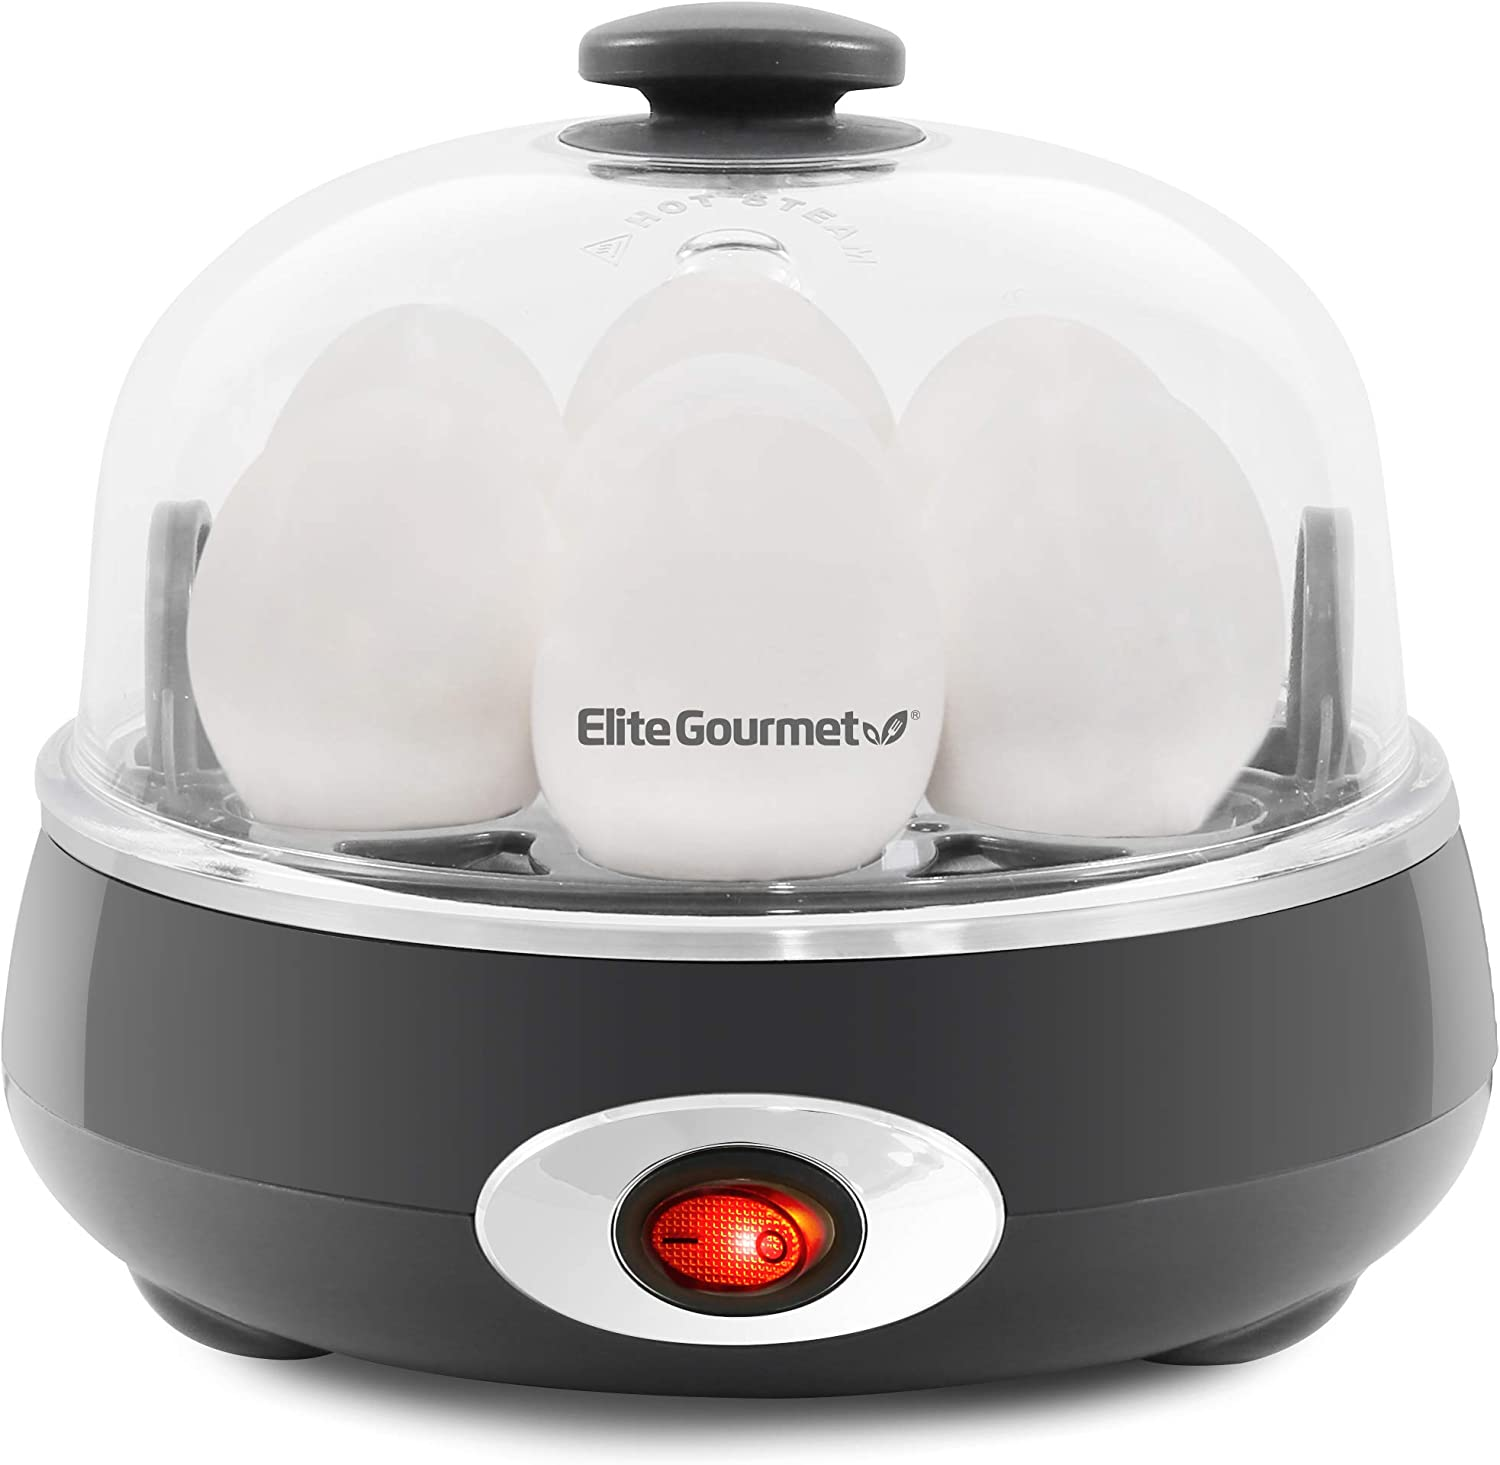 Elite Gourmet EGC007CHC Easy Electric 7 Egg Capacity Cooker, Poacher, Omelet Maker, Scrambled, Soft, Medium, Hard Boiled with Auto Shut-Off and Buzzer, BPA Free, Charcoal Grey